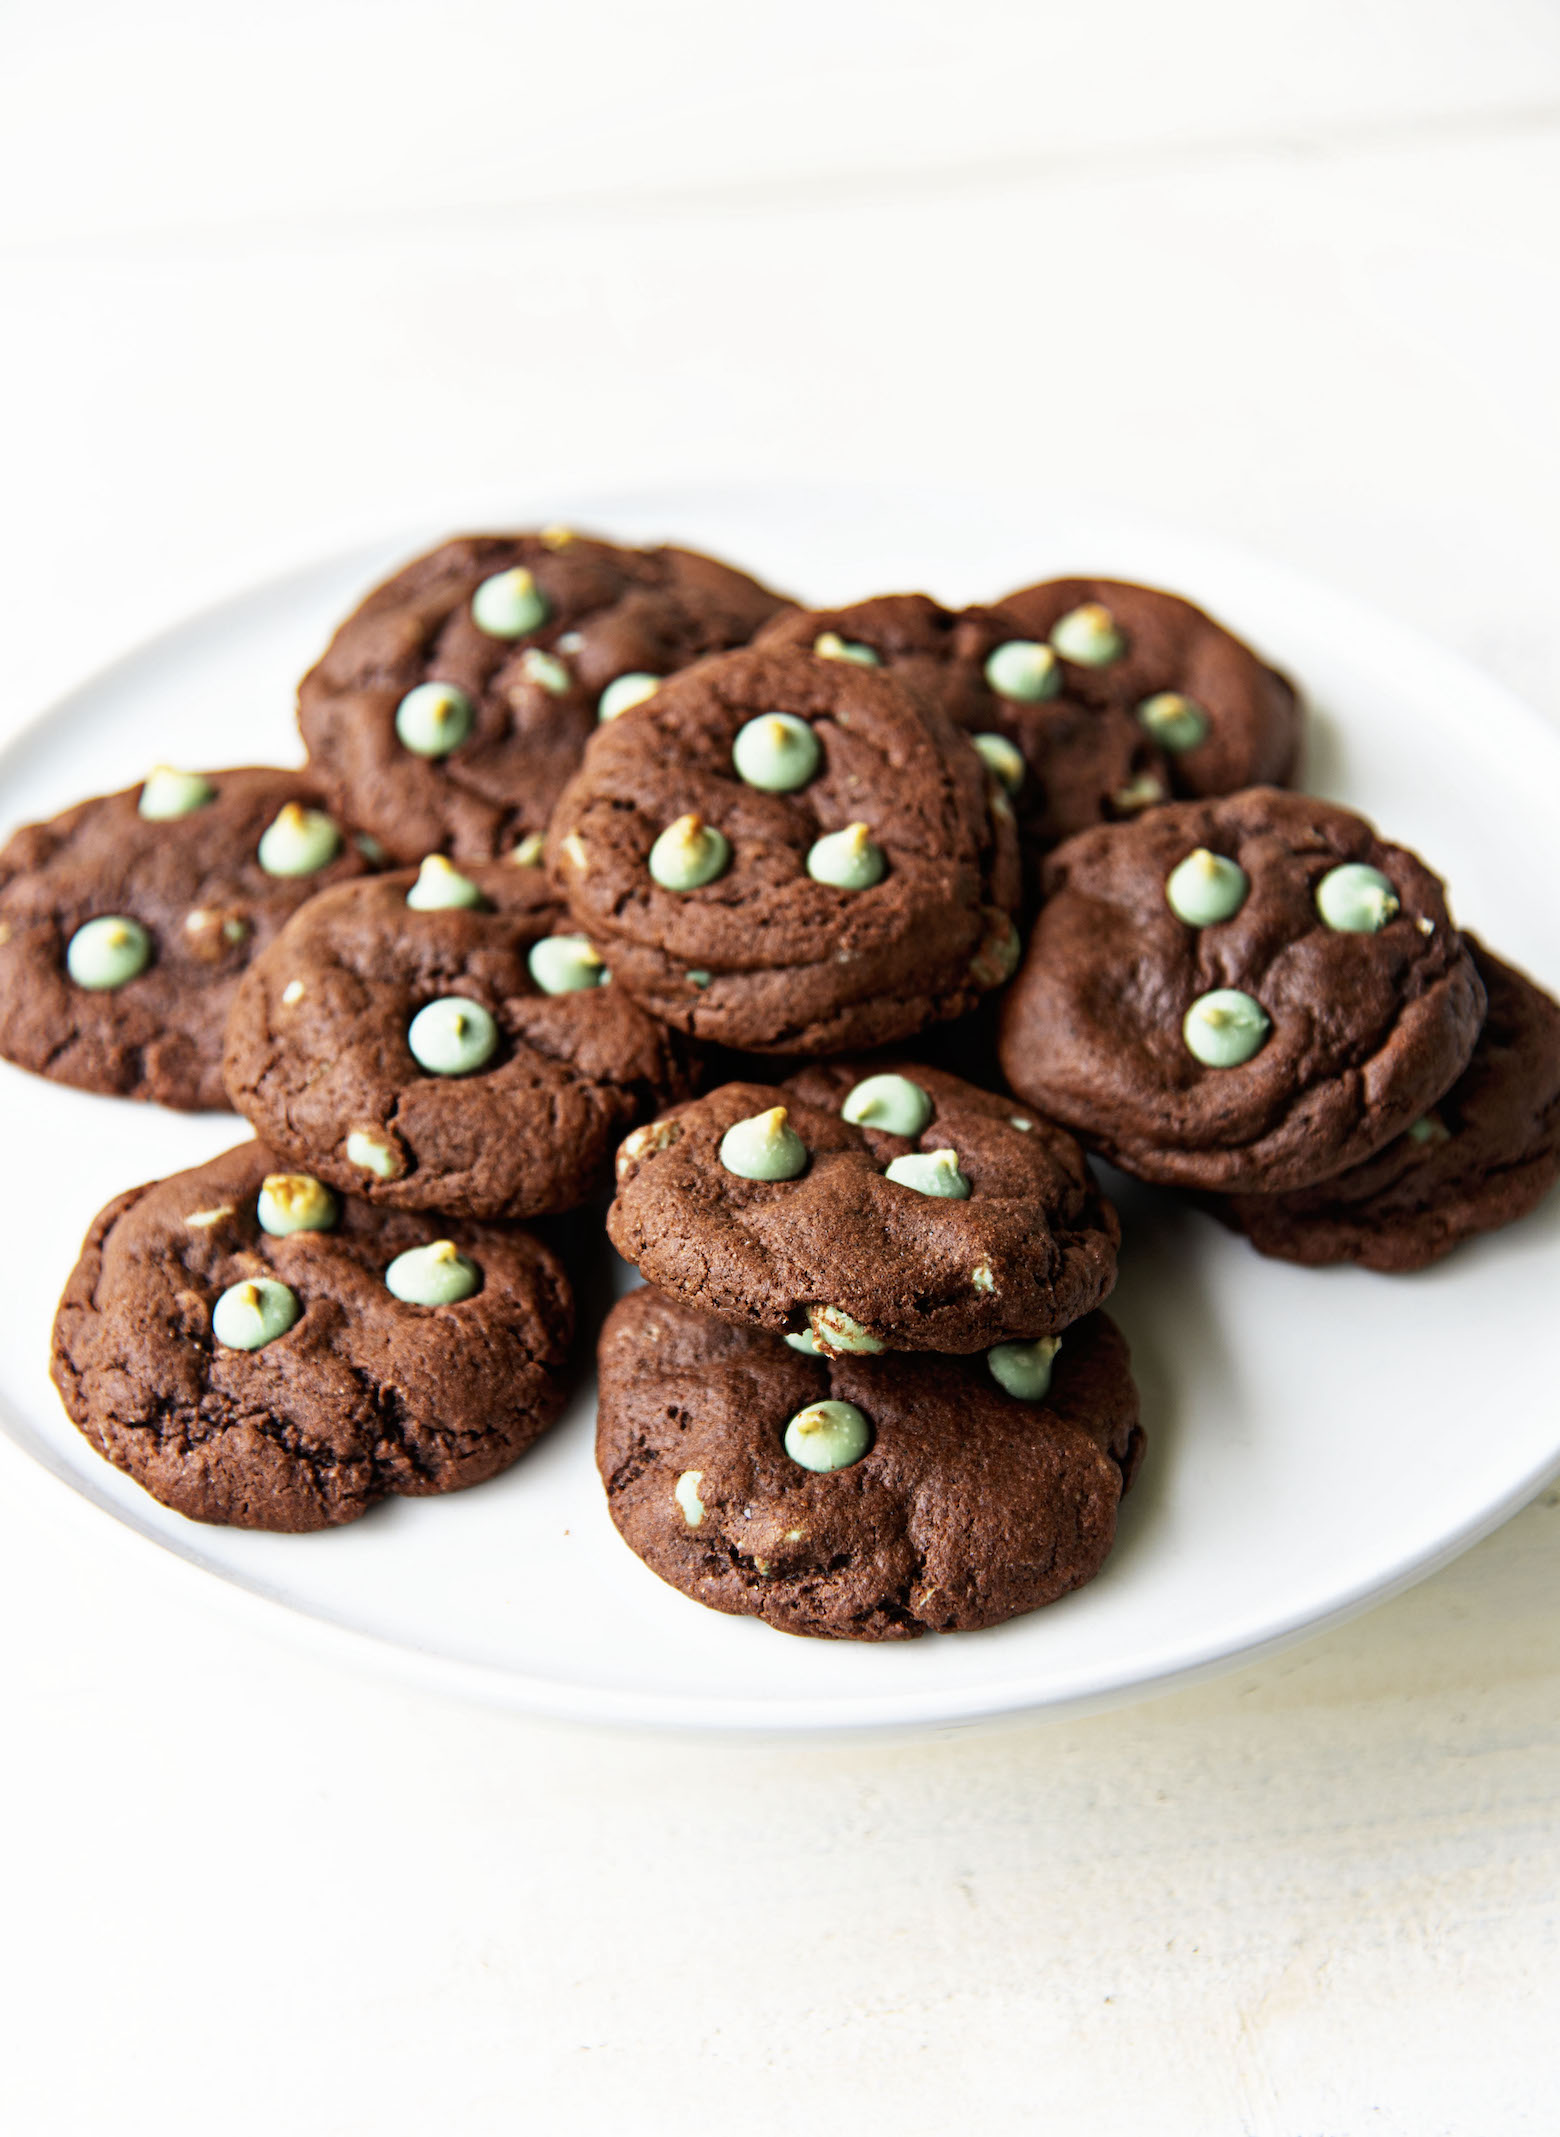 Plate full of Chocolate Mint Frappuccino Cookies.